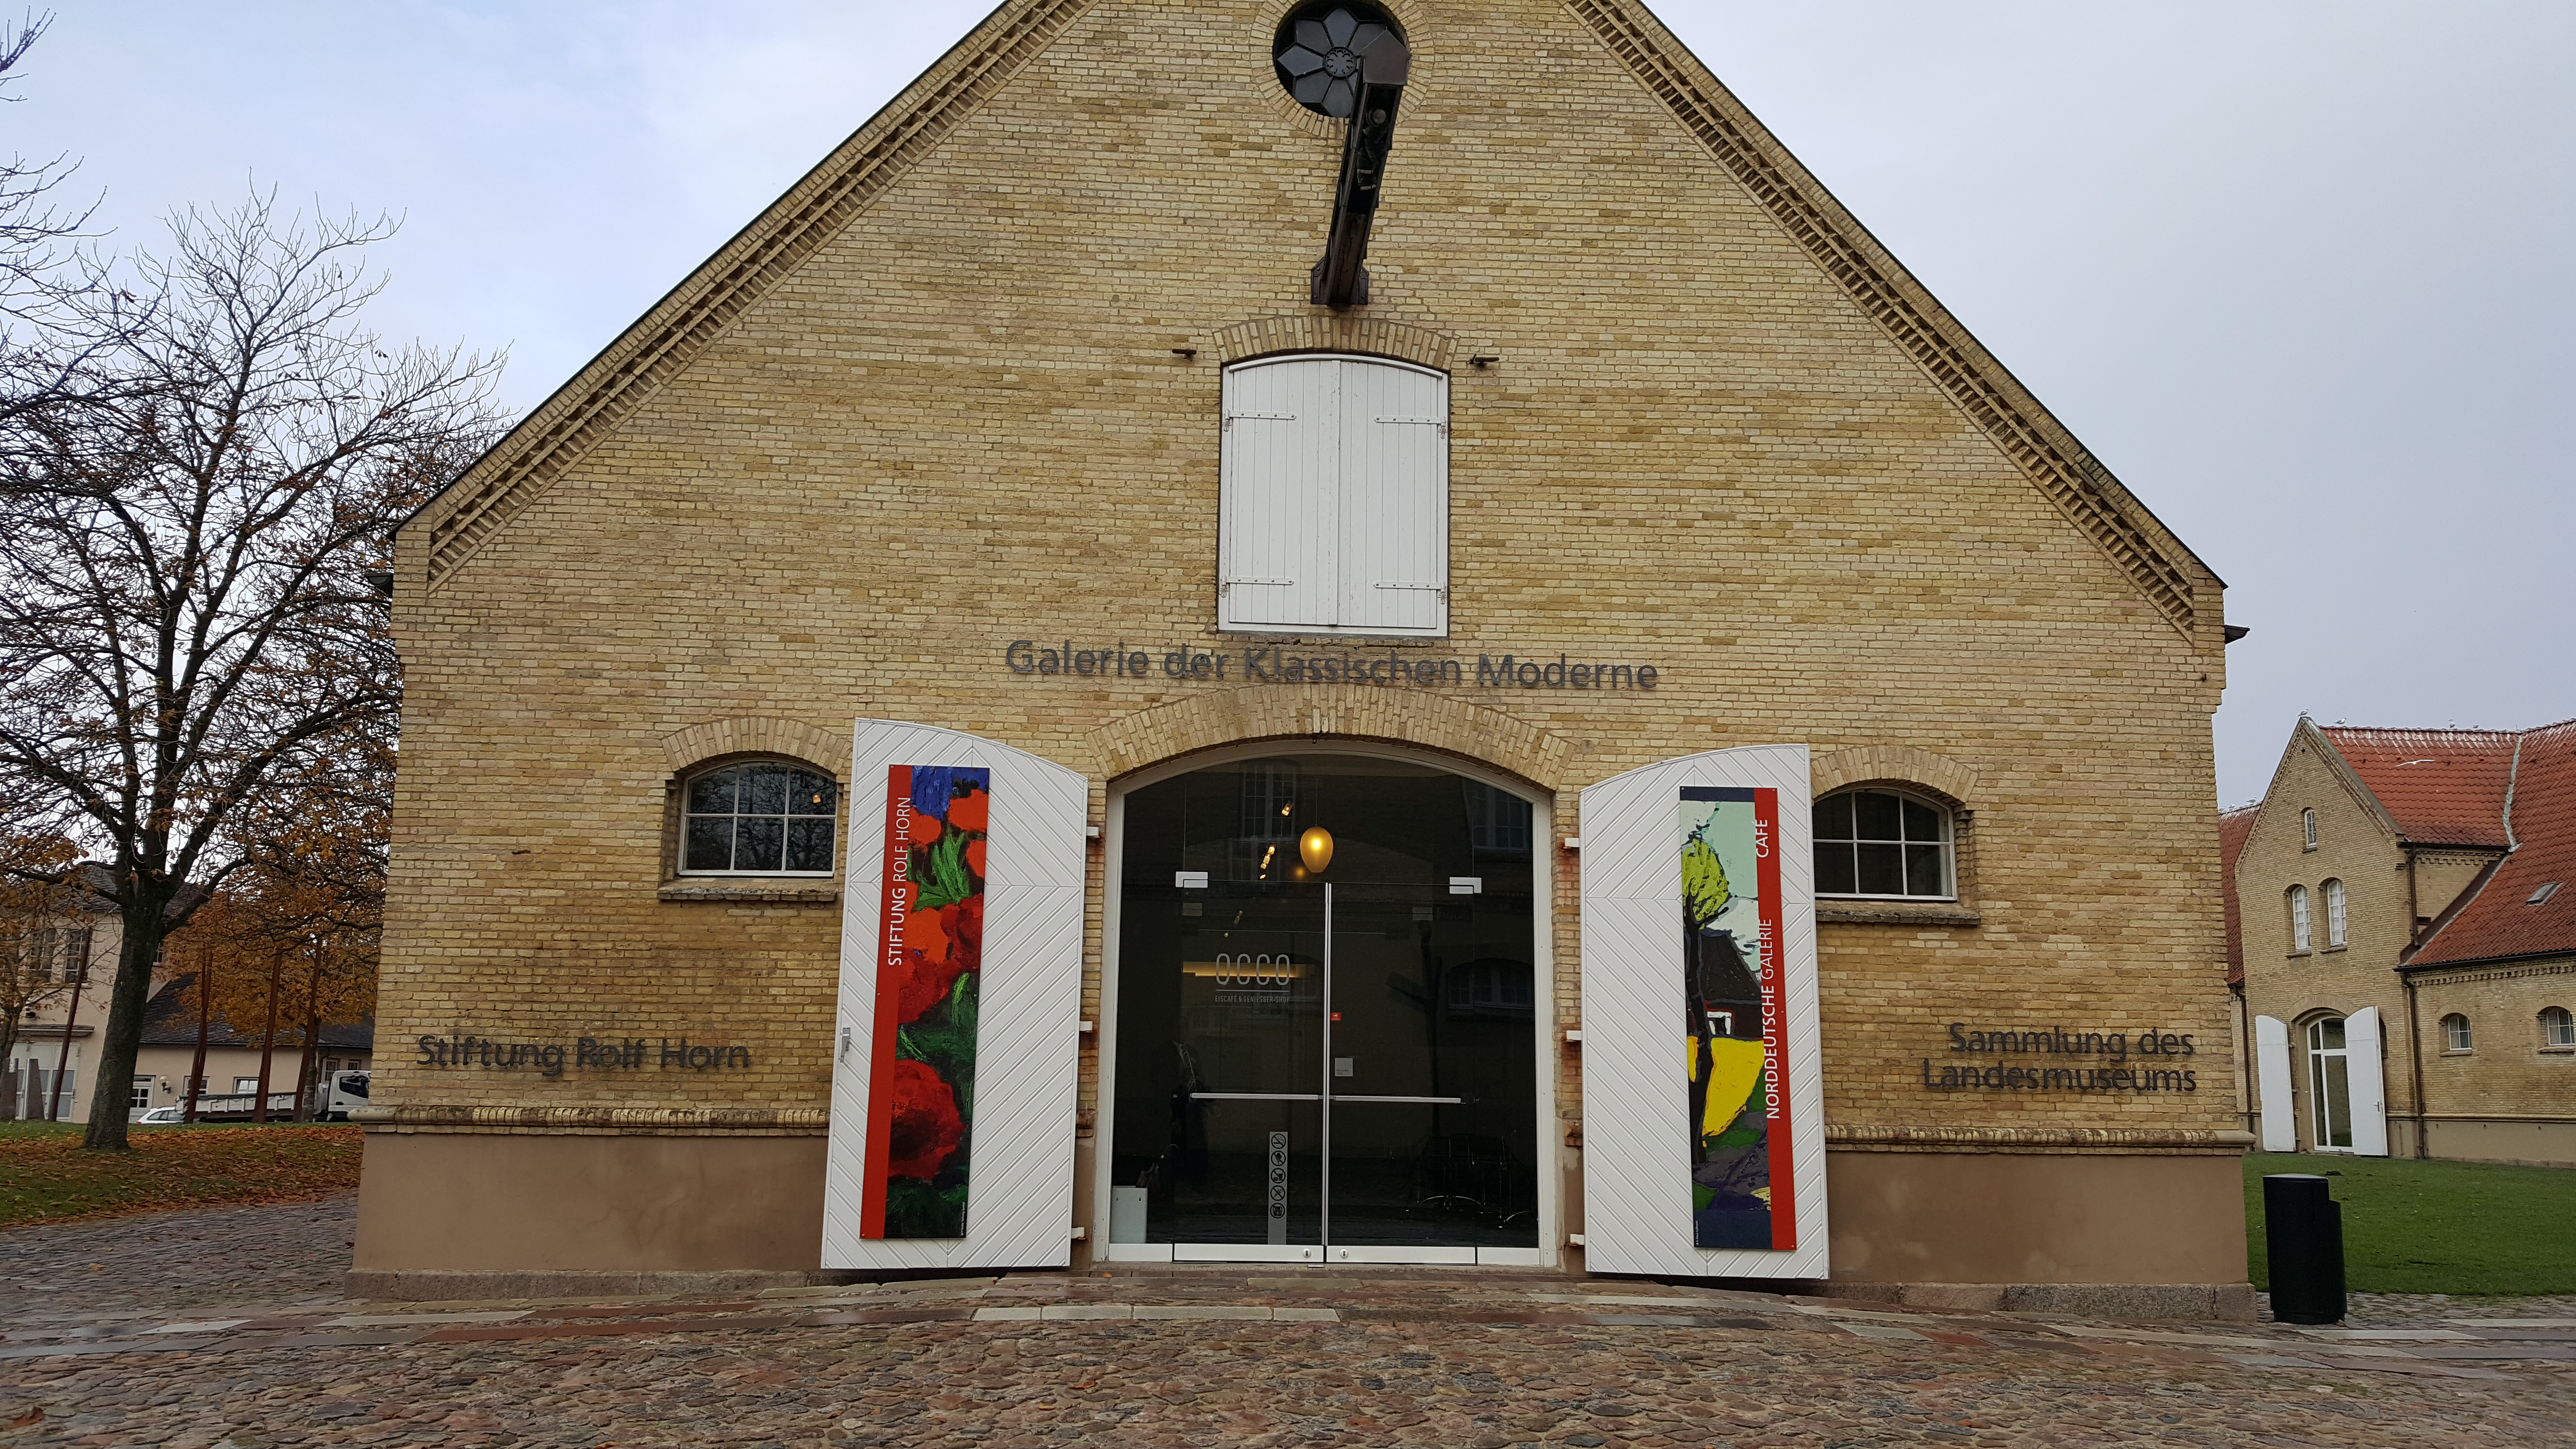 A surprisingly wonderful museum showcasing modern art by north German artists. A must see if you visit Schleswig. Photo by Dragonfly Leathrum